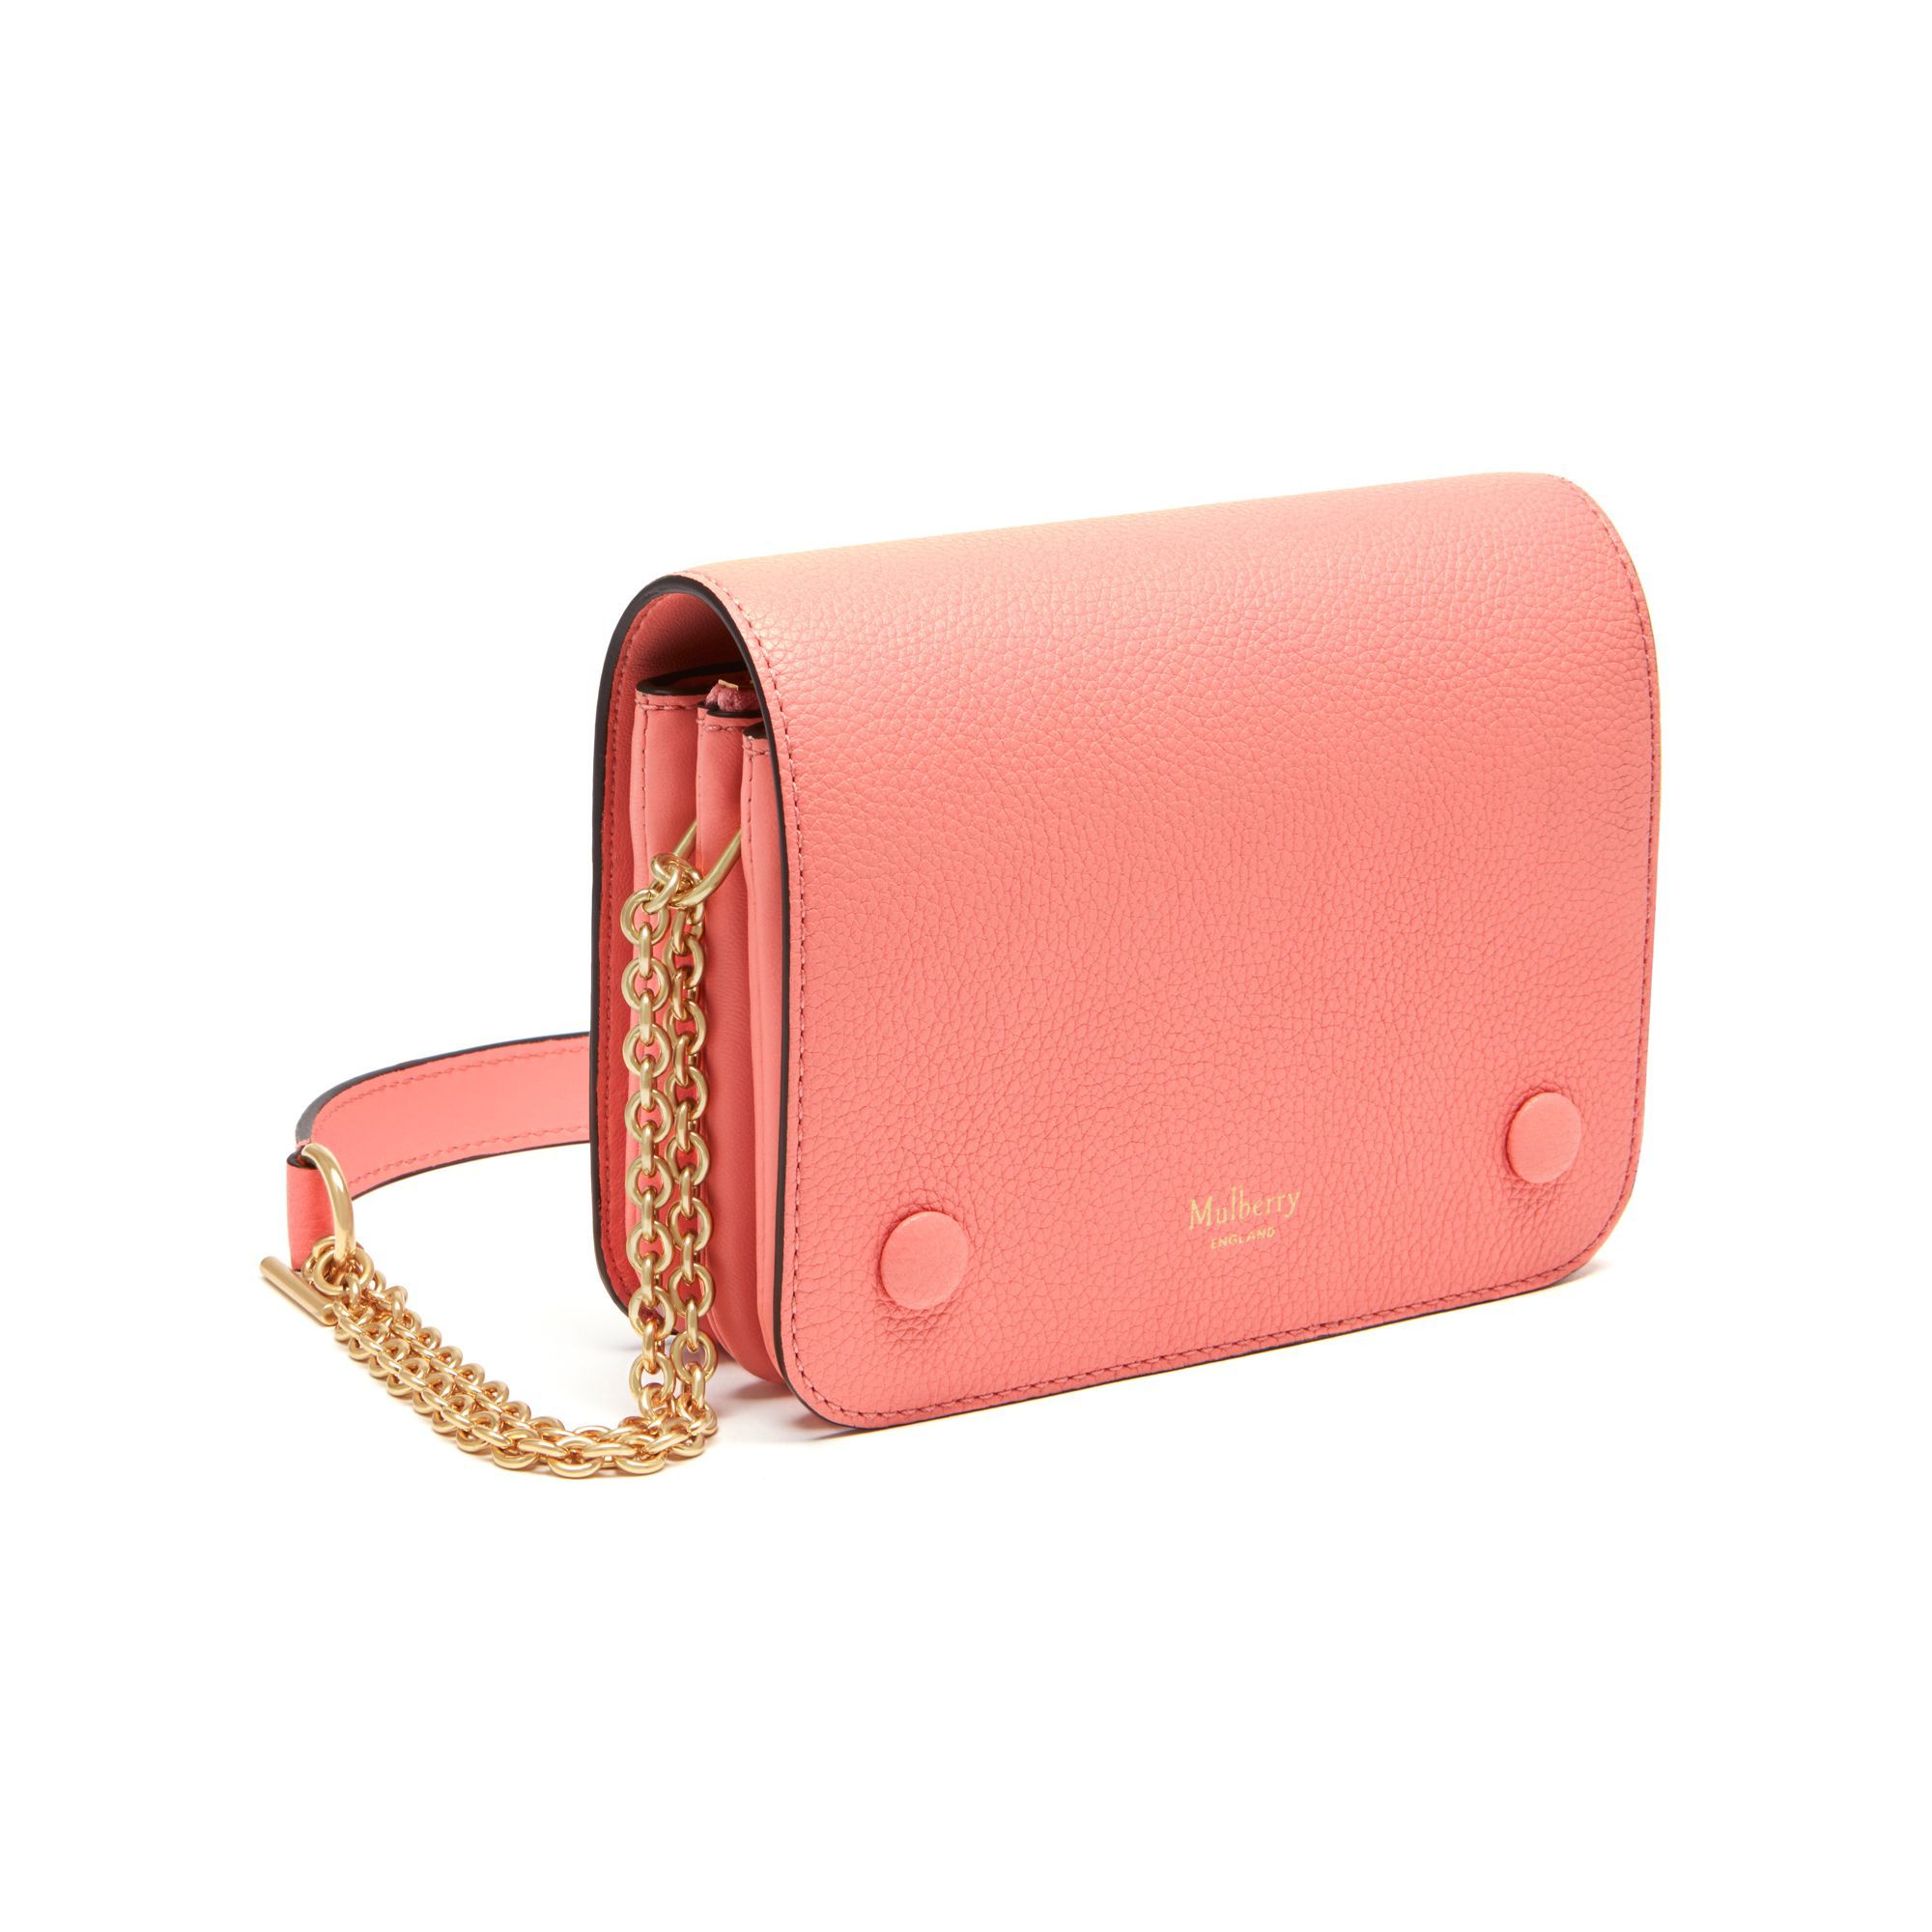 Shop the Small Clifton in Macaroon Pink Leather at Mulberry.com. The Small  Clifton 890aba177f2c1